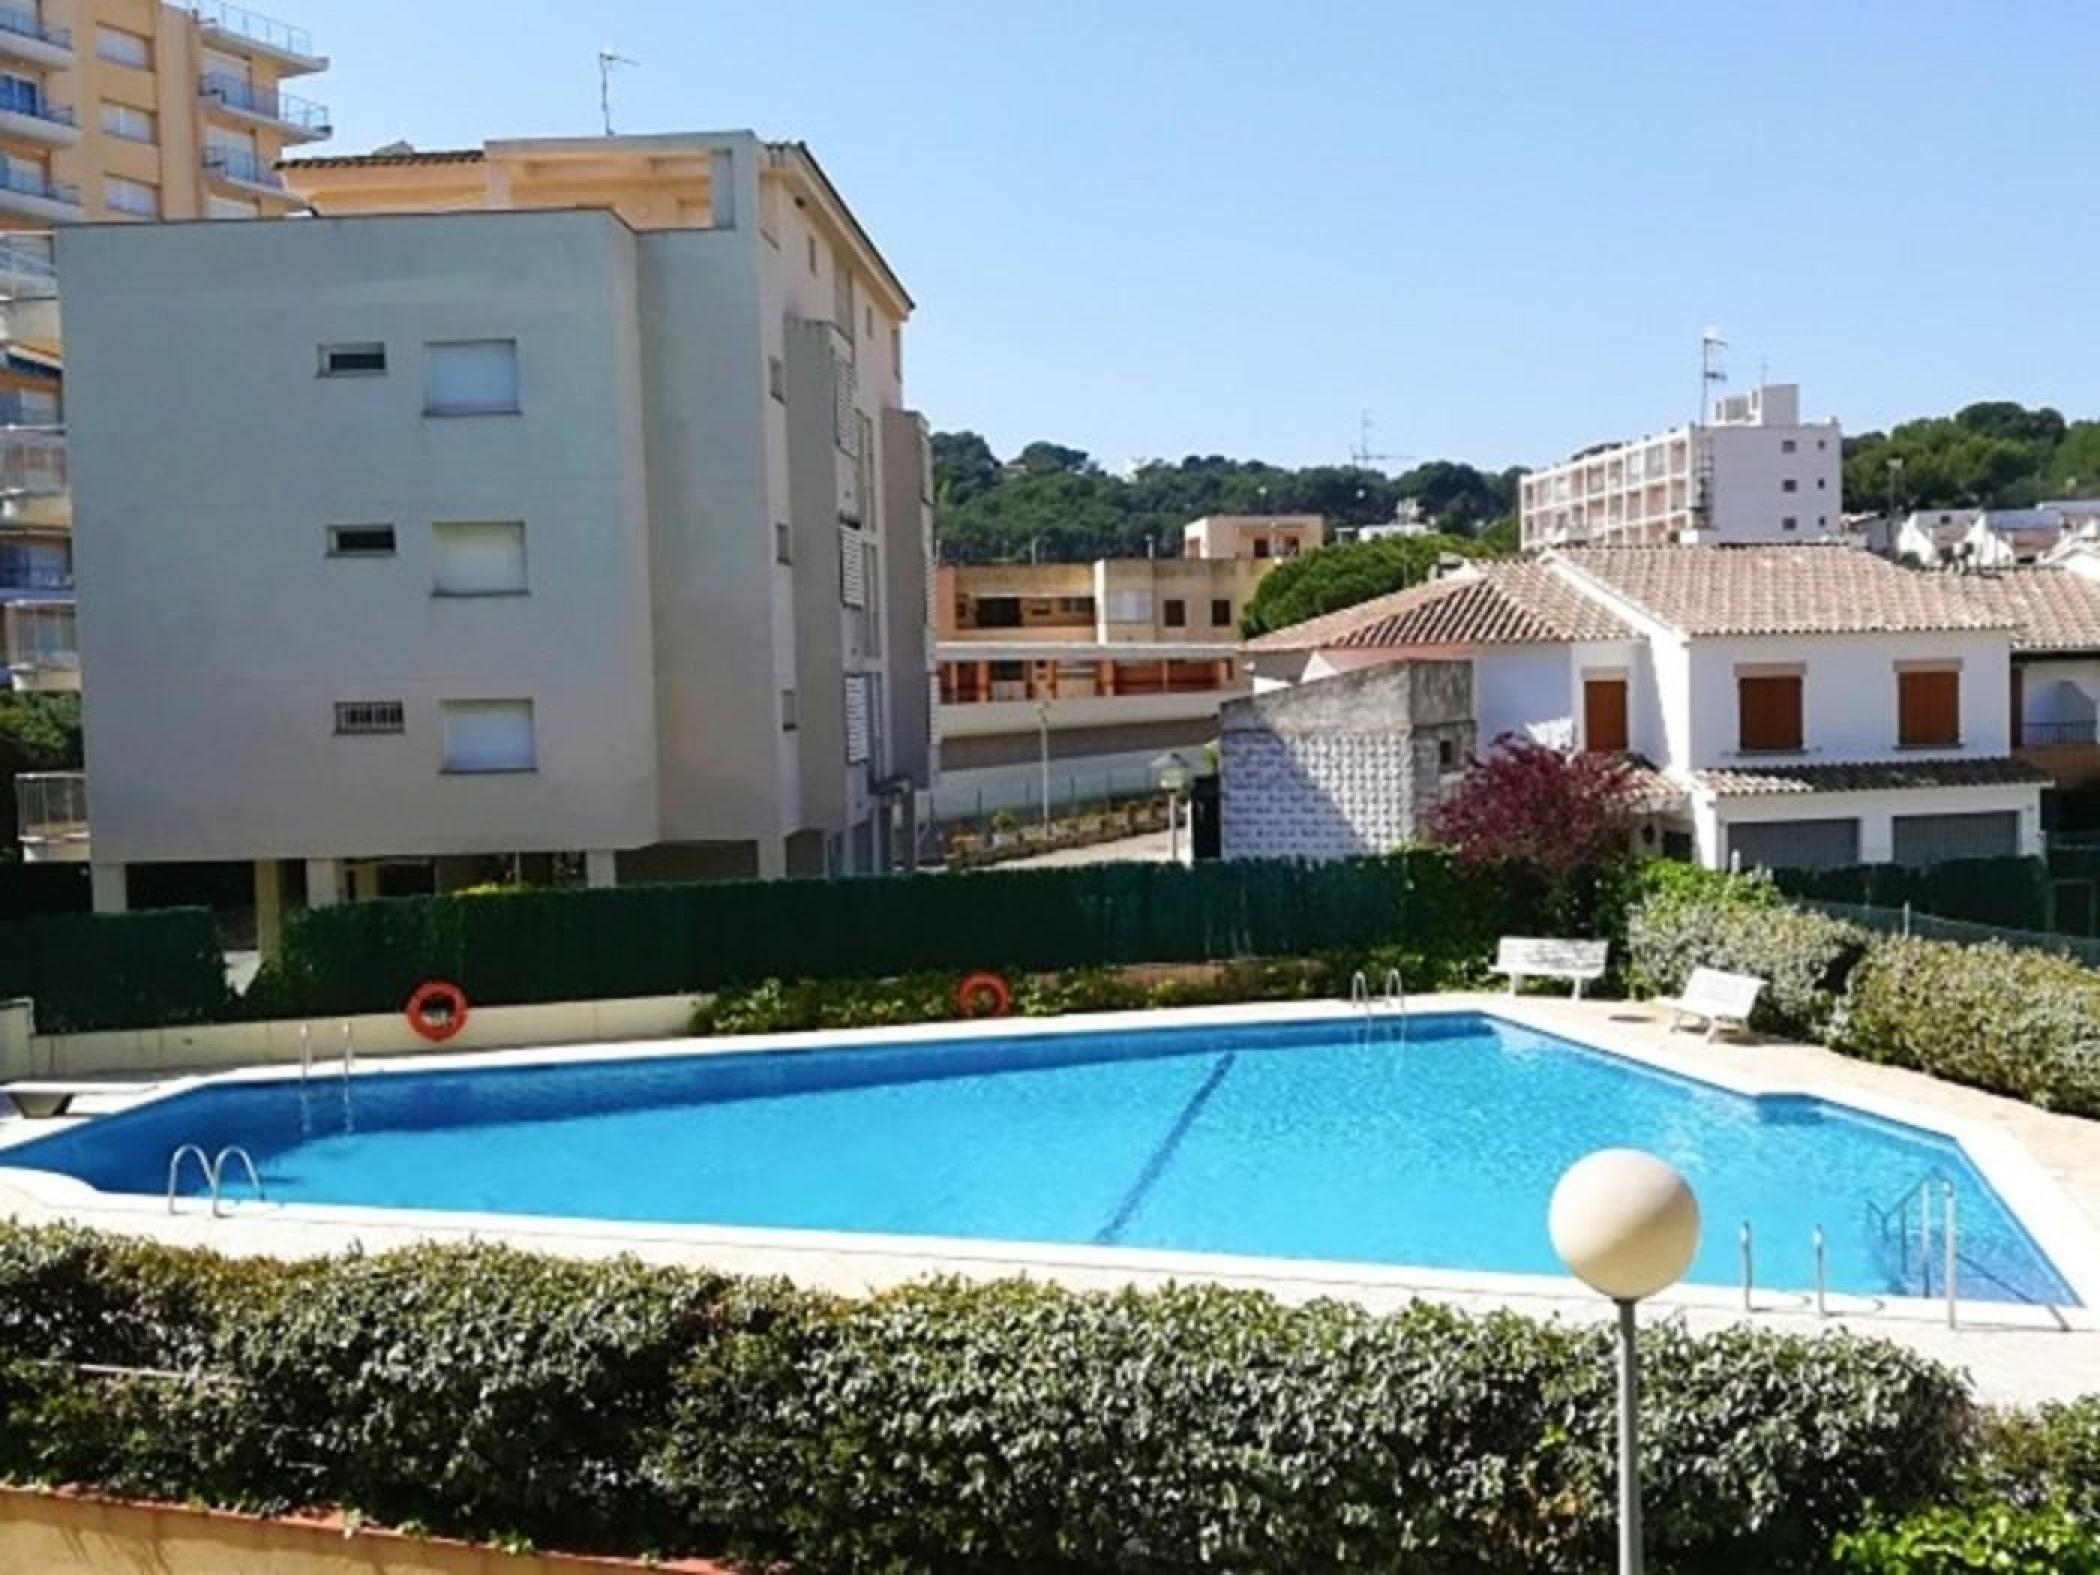 Rent Apartment with Swimming pool in Sant Antoni de Calonge - Complexe Canigó amb piscina i 1º linea de mar - 1